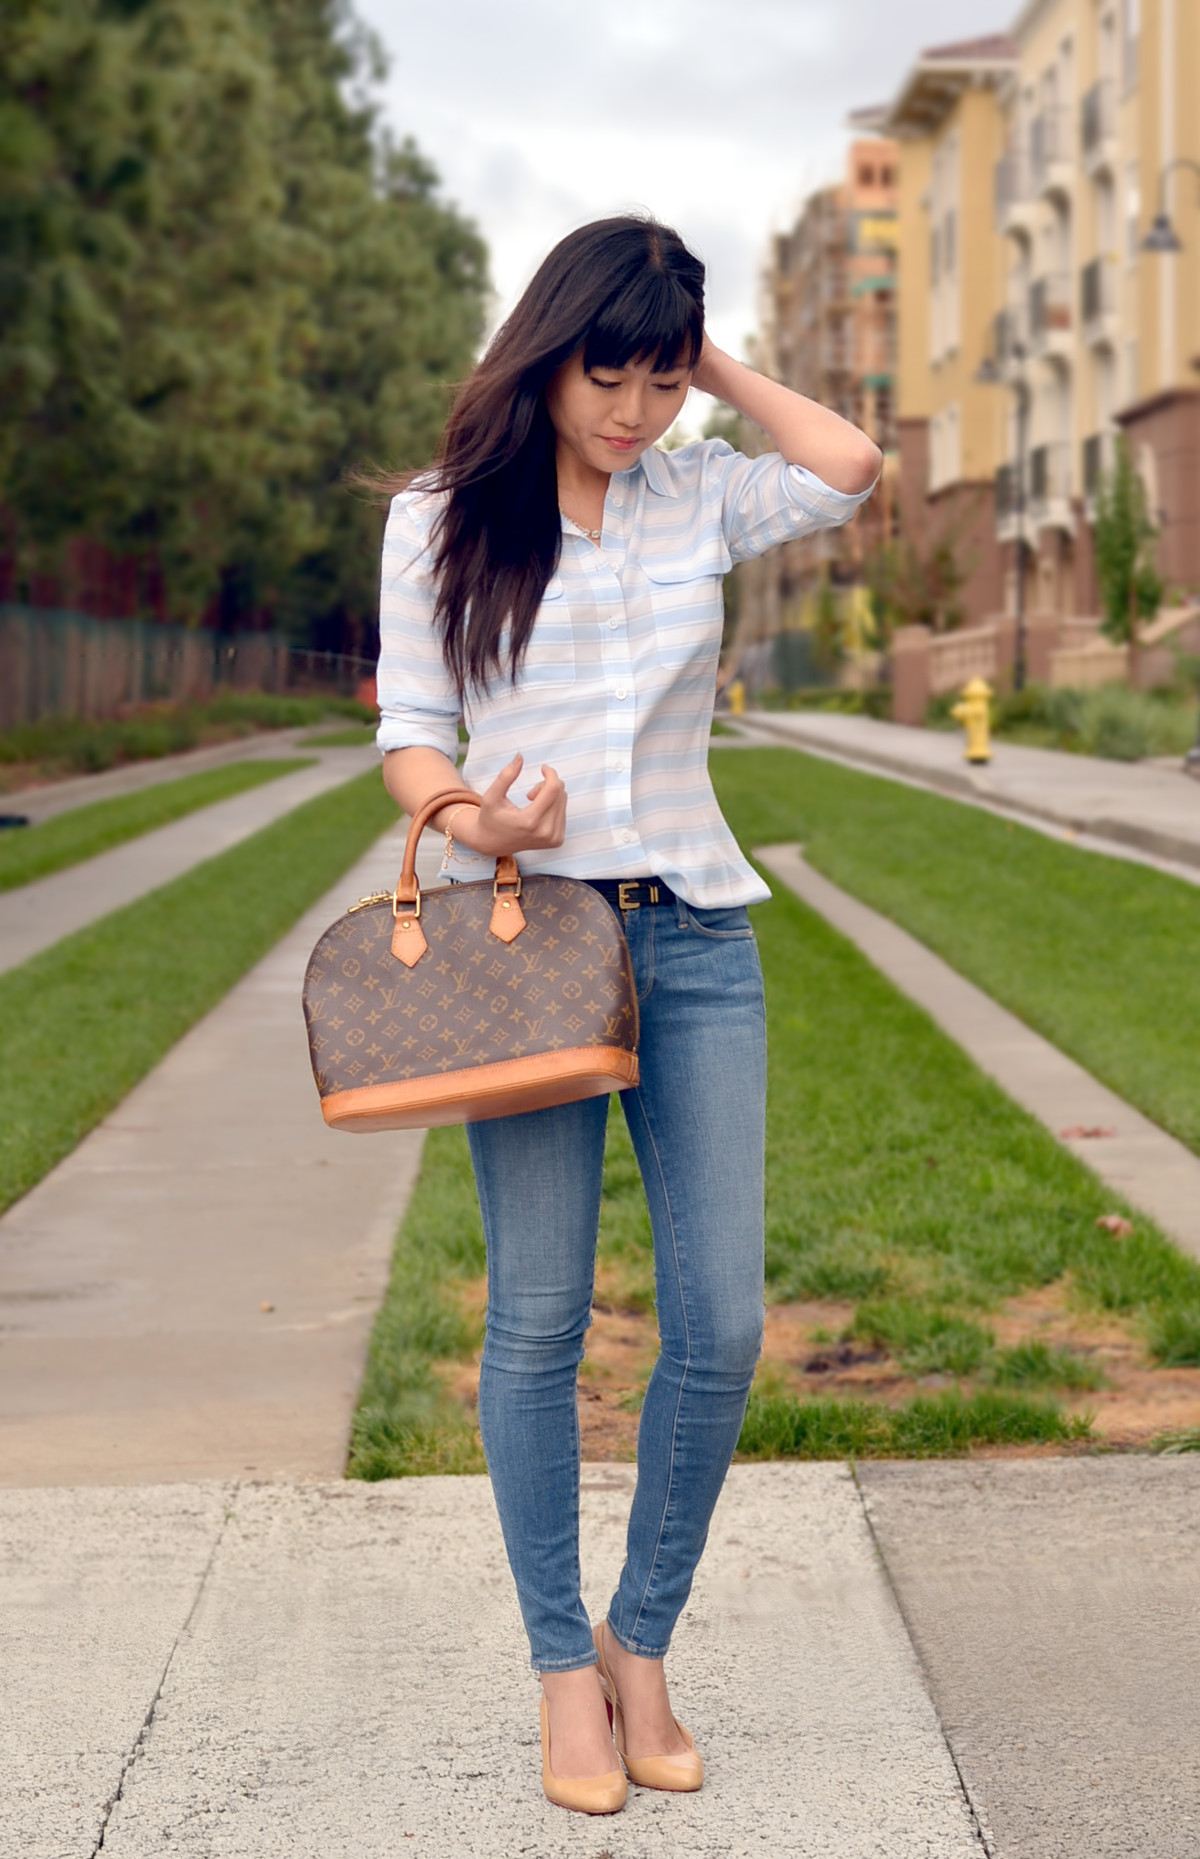 Fall skinny jeans outfit with louis vuitton bag